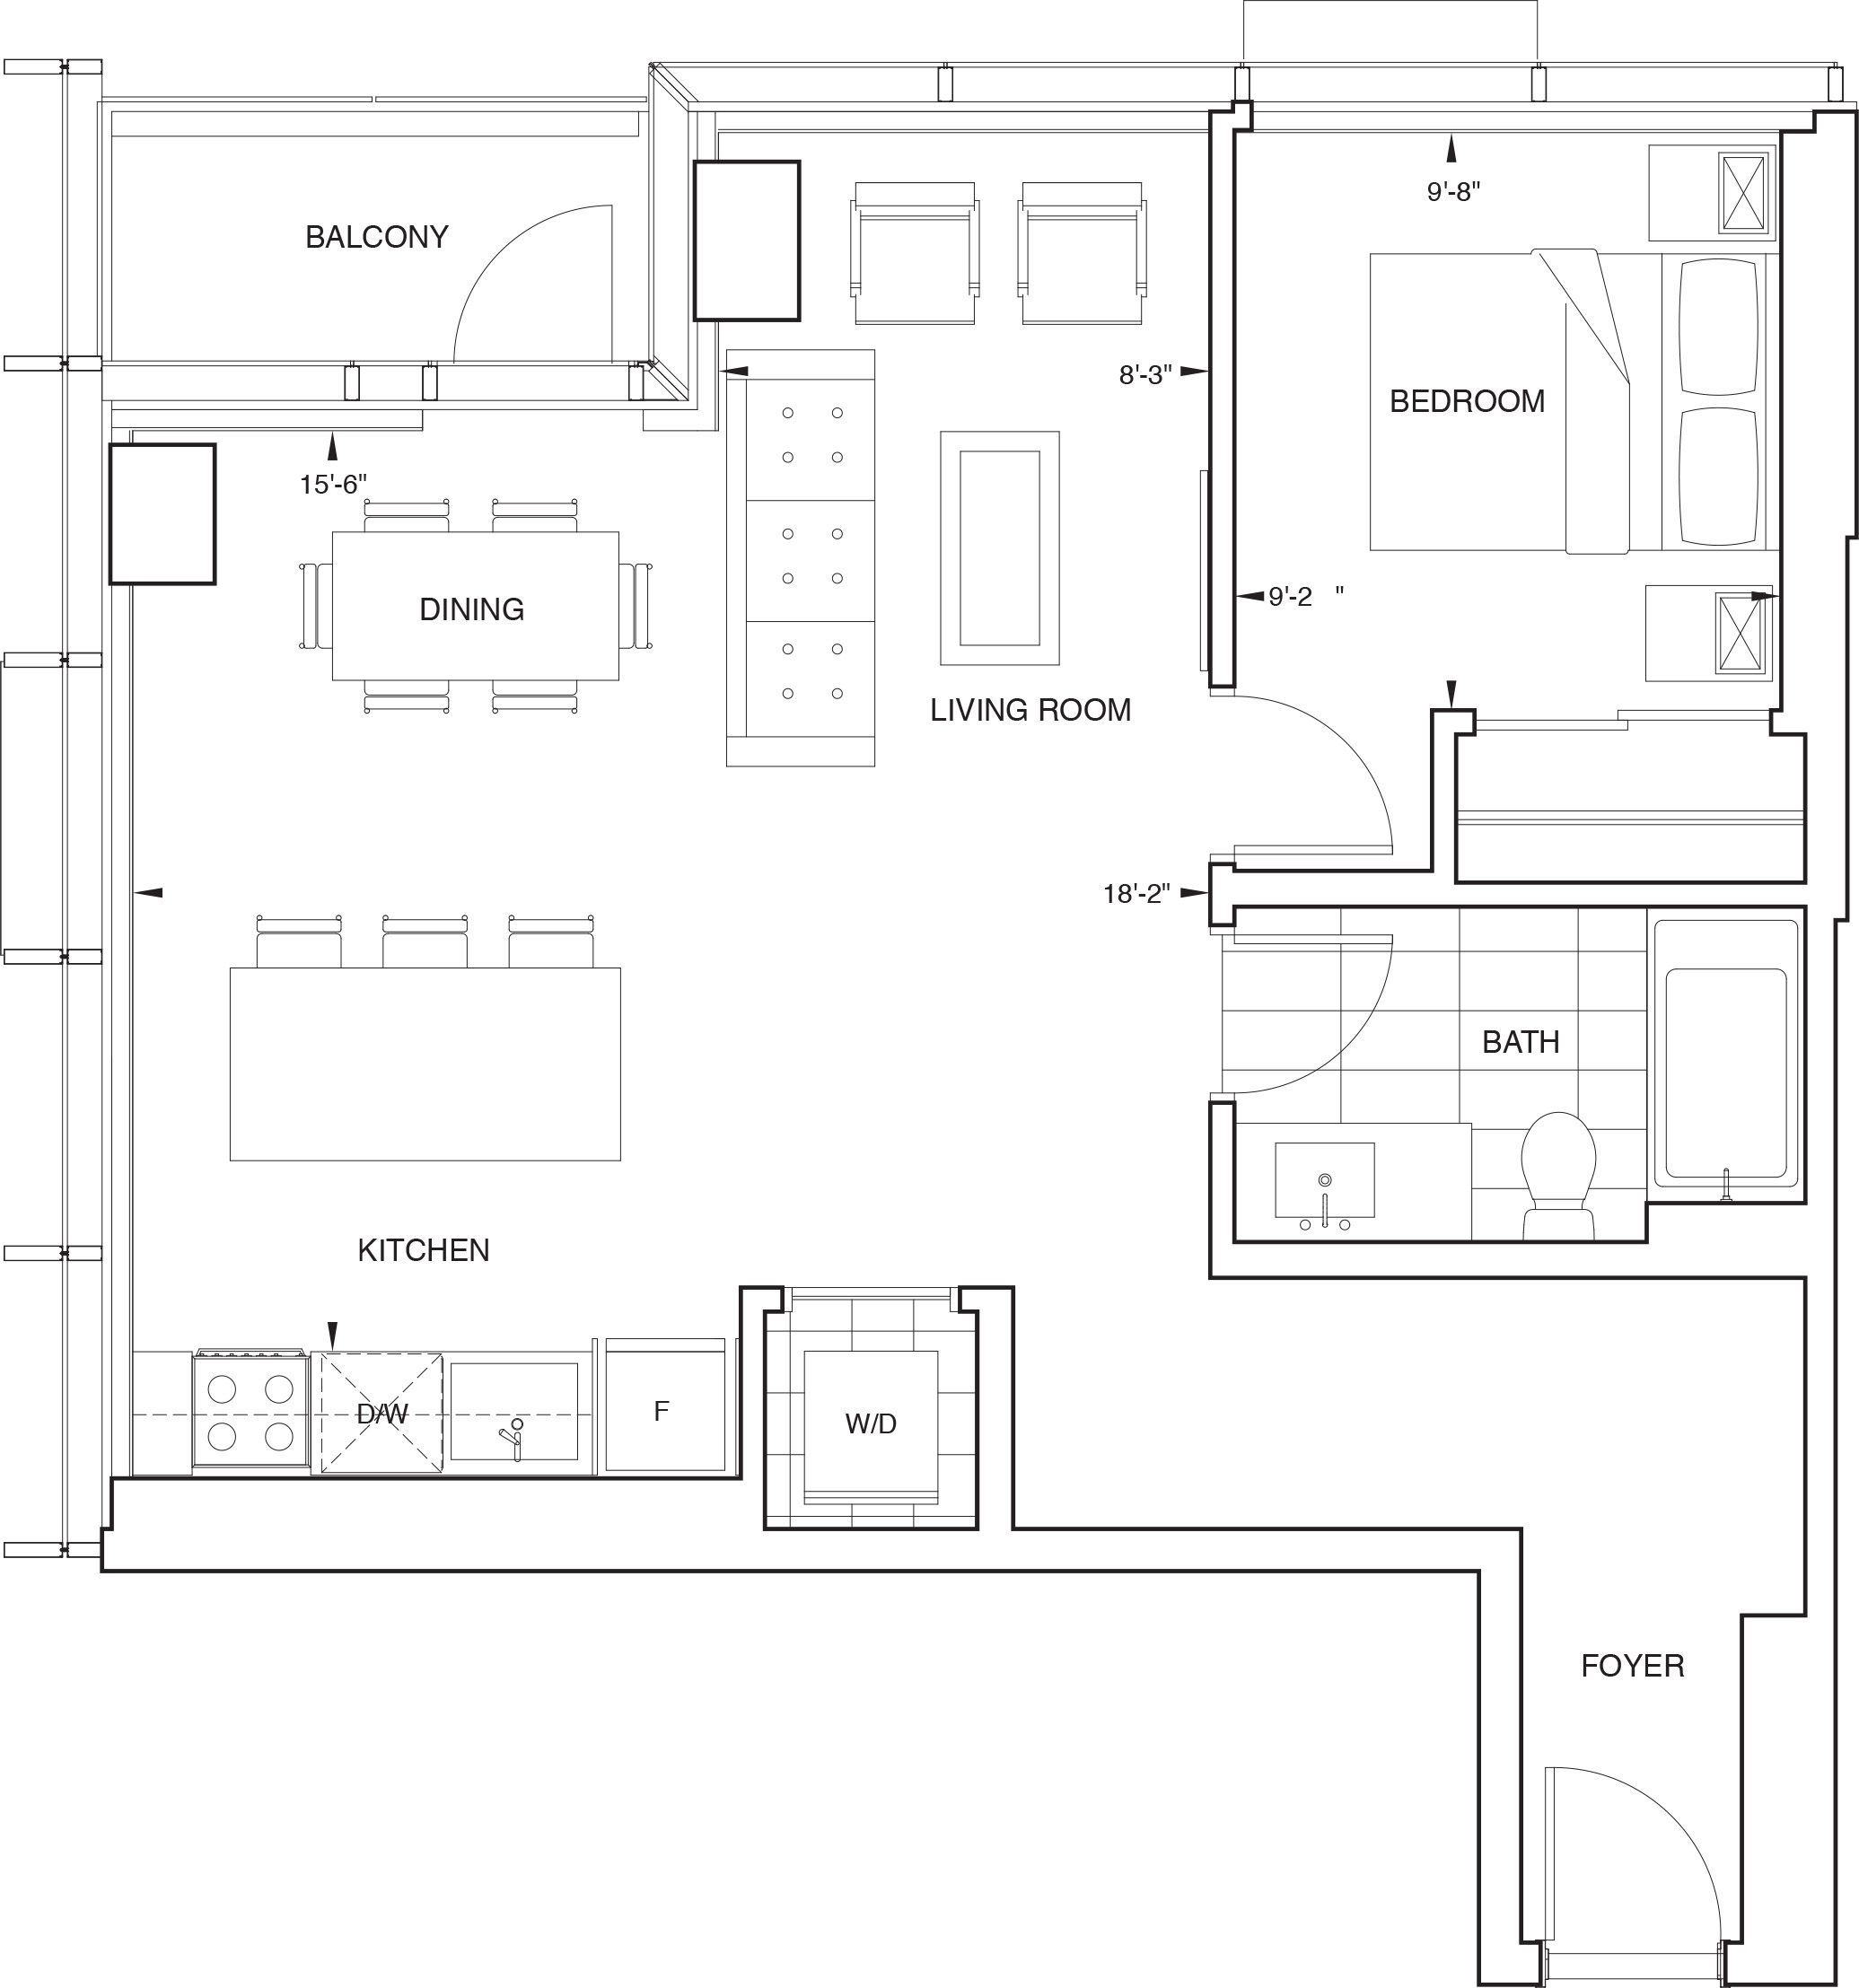 Floorplan for SKY Residence D1